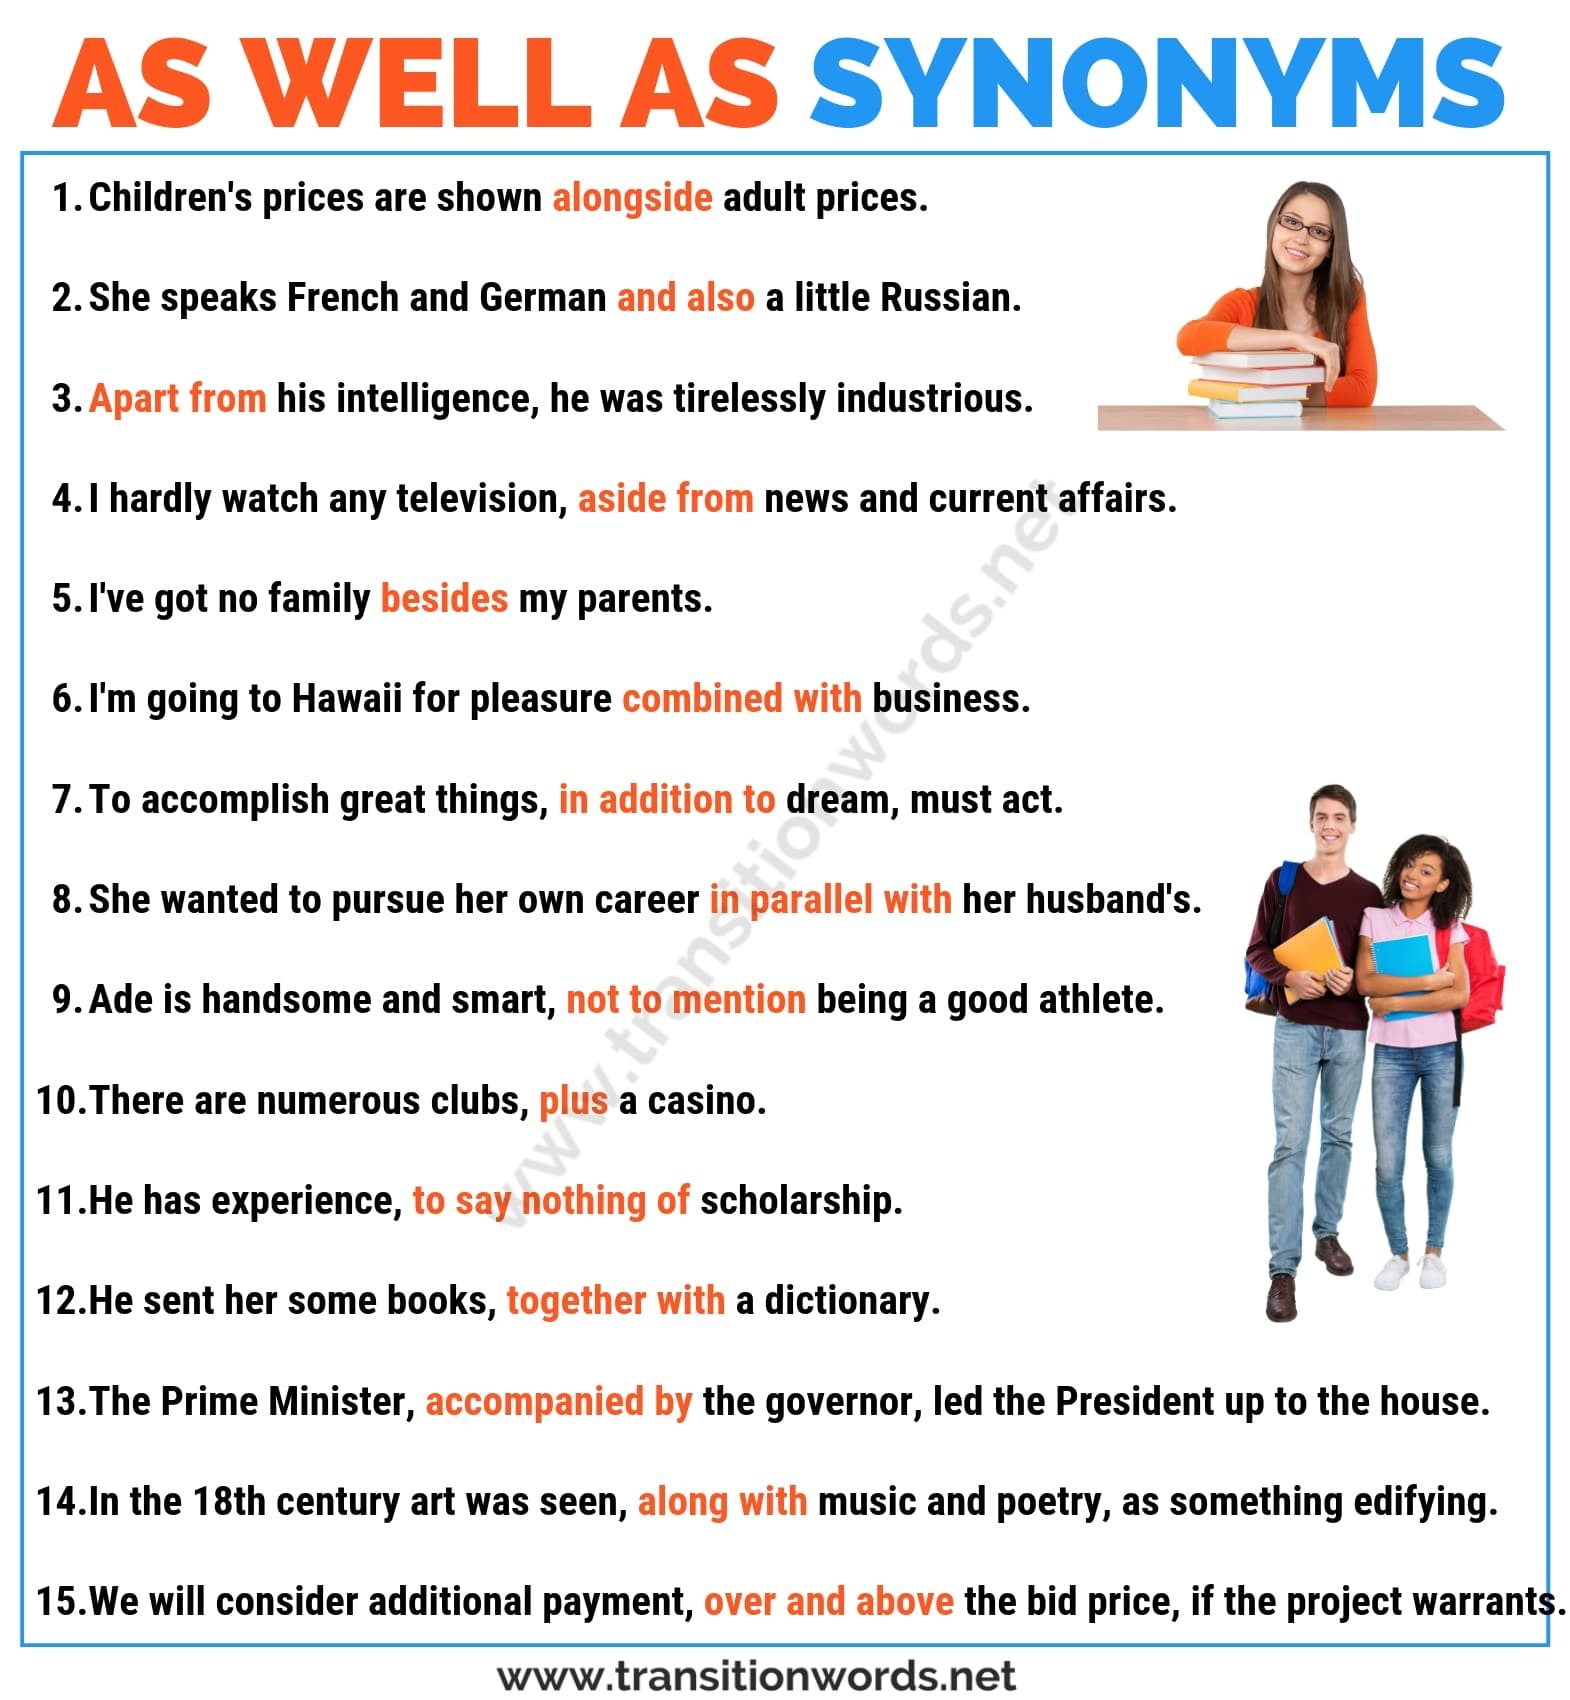 AS WELL AS Synonym: List of 22 Synonyms for As well as with Examples